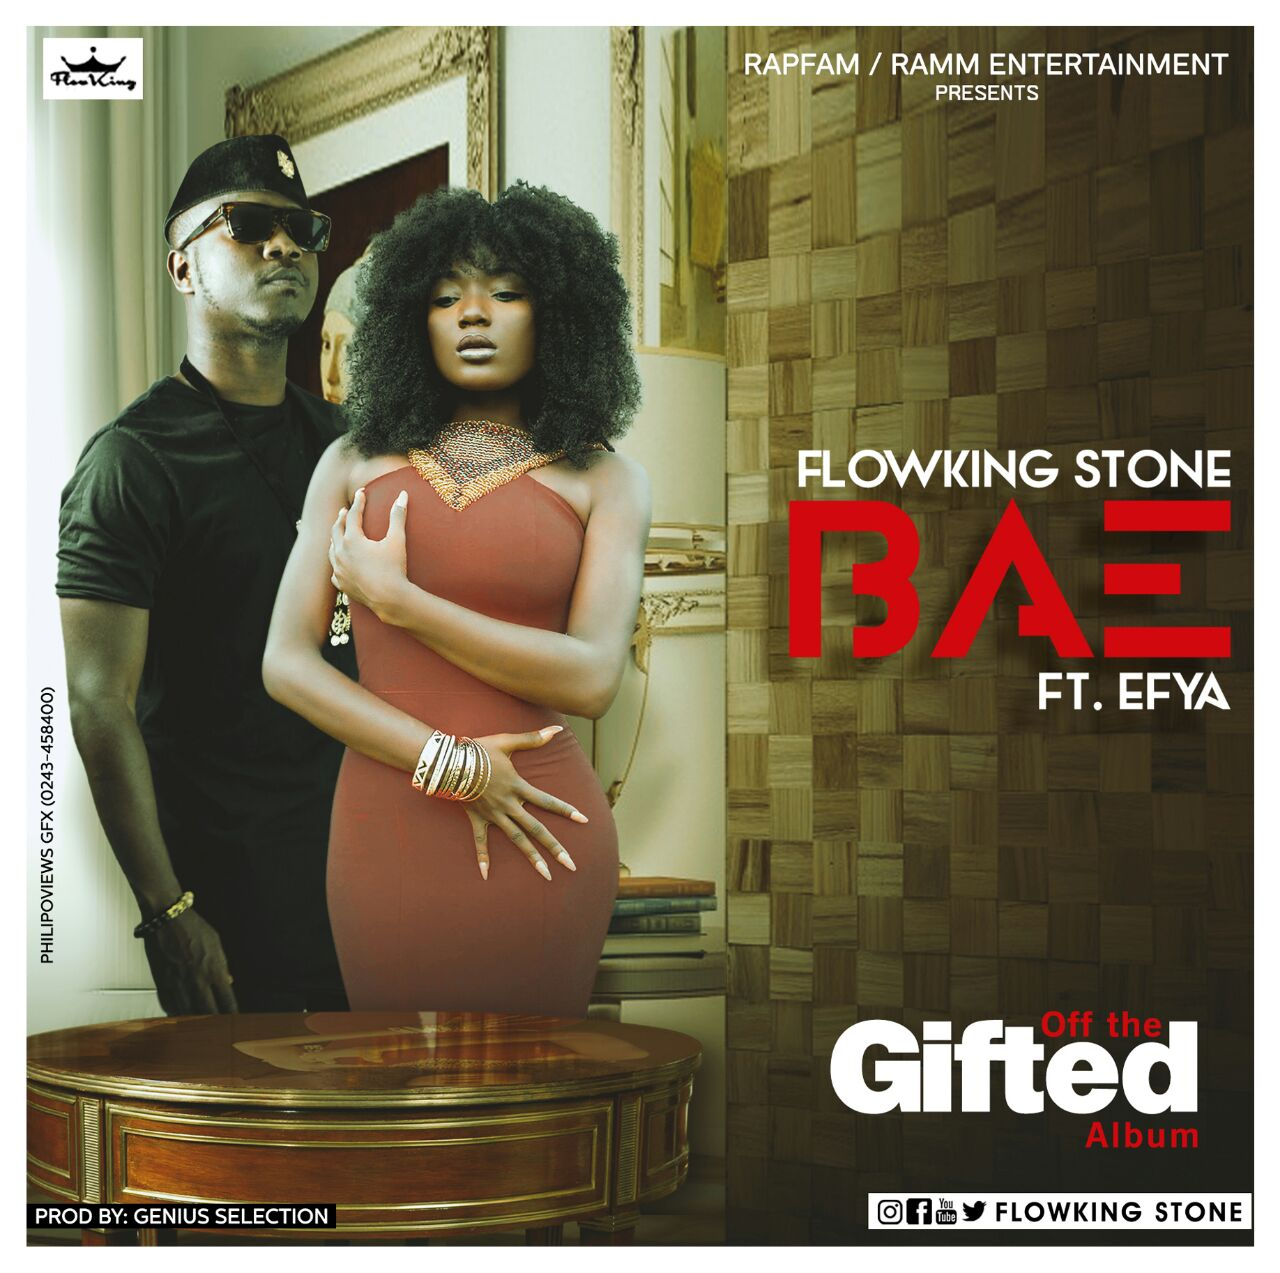 Flowking Stone – Bae (Ft. Efya) Prod. By Genius Selection